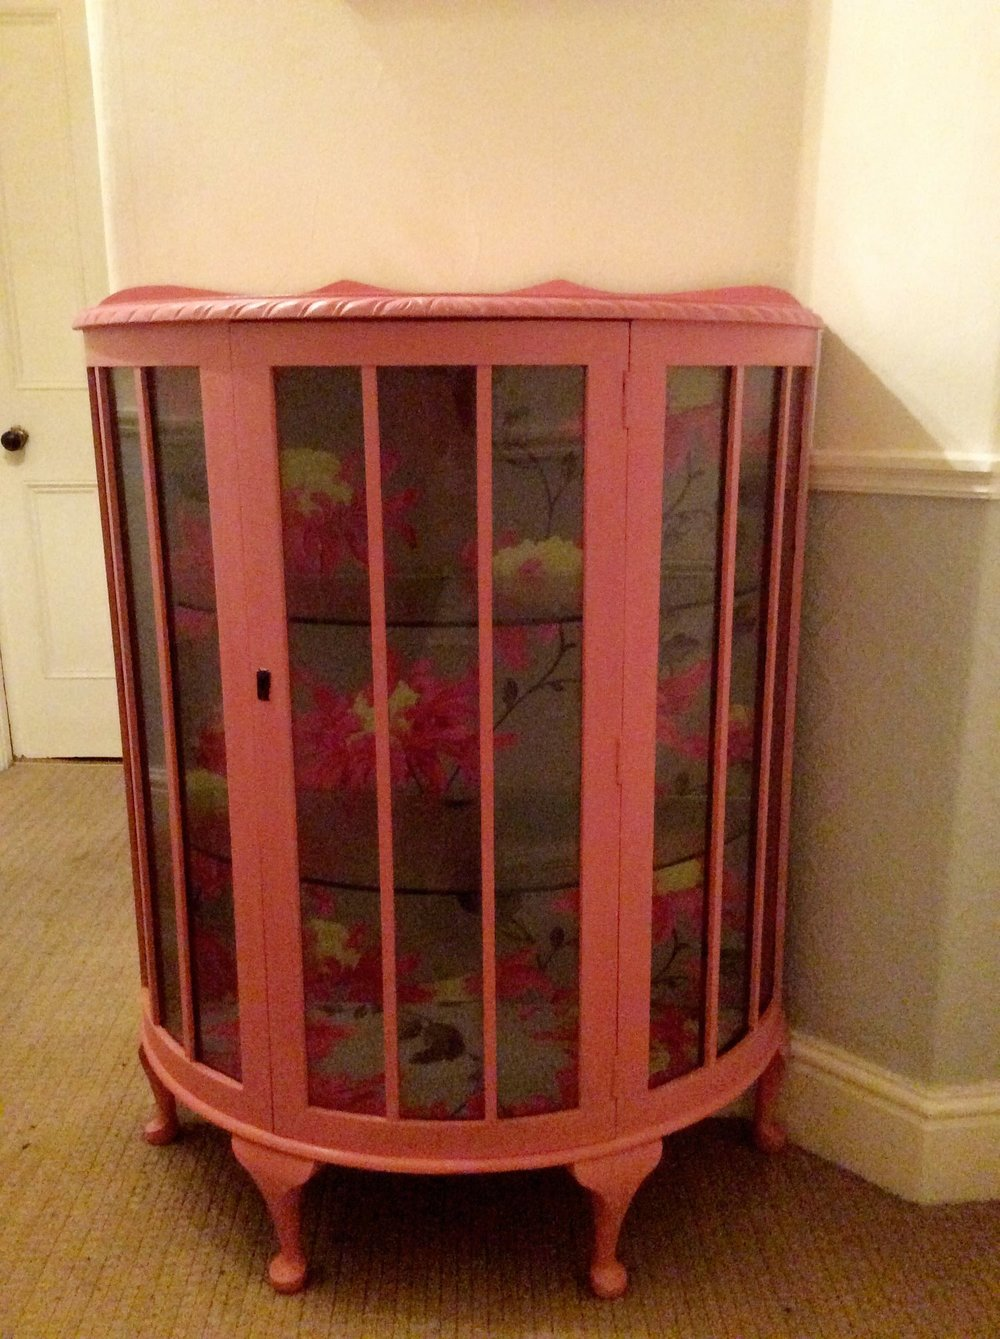 Finished Up-Cycled 1950's Cabinet!